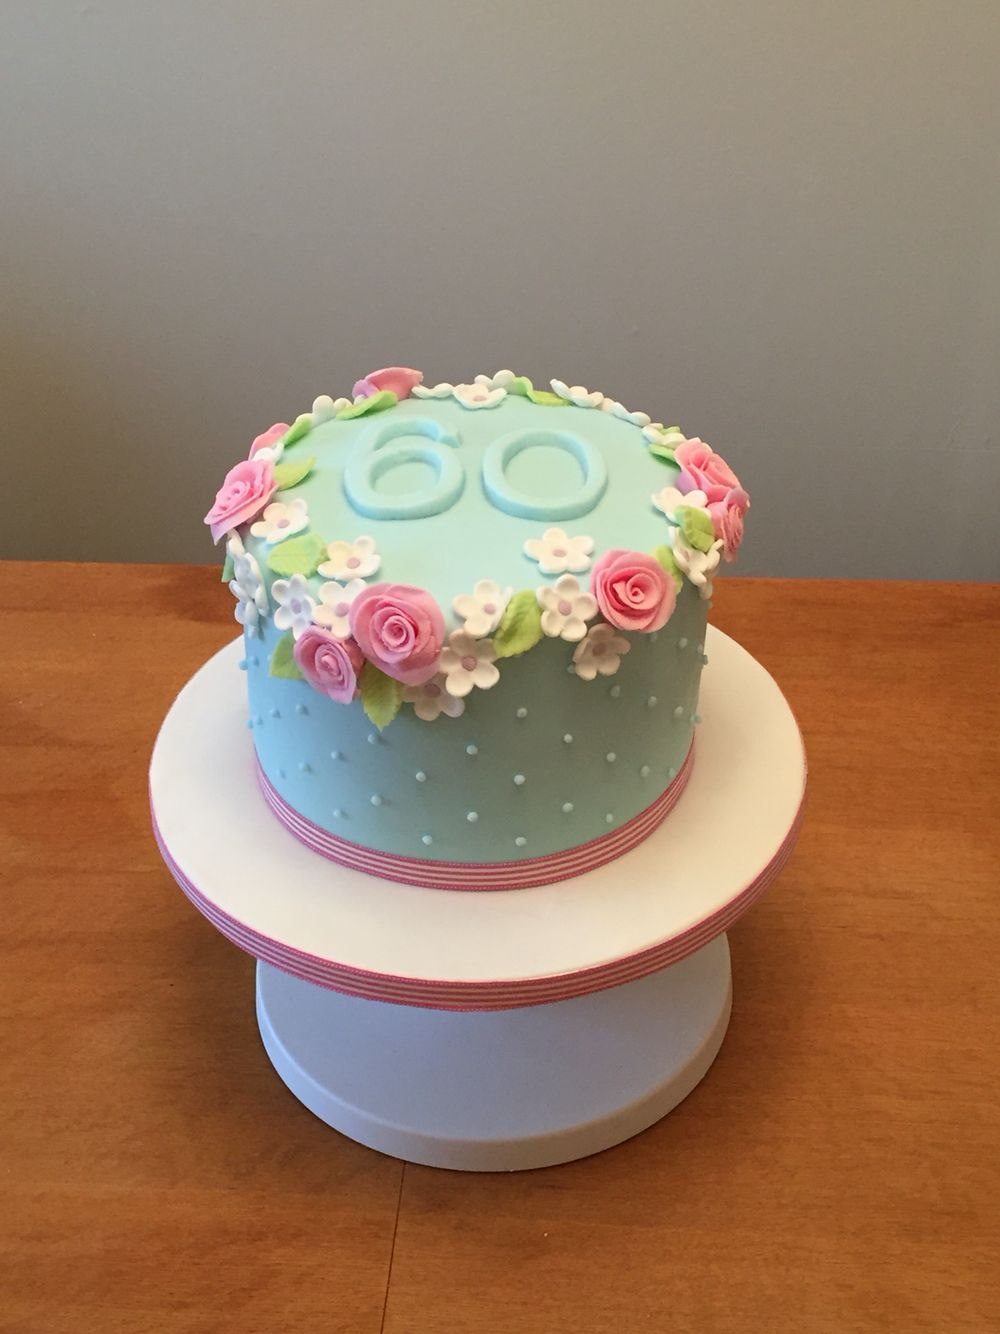 60th Birthday Cake Flowery And Simple Simple Birthday Cake 70th Birthday Cake Mom Cake